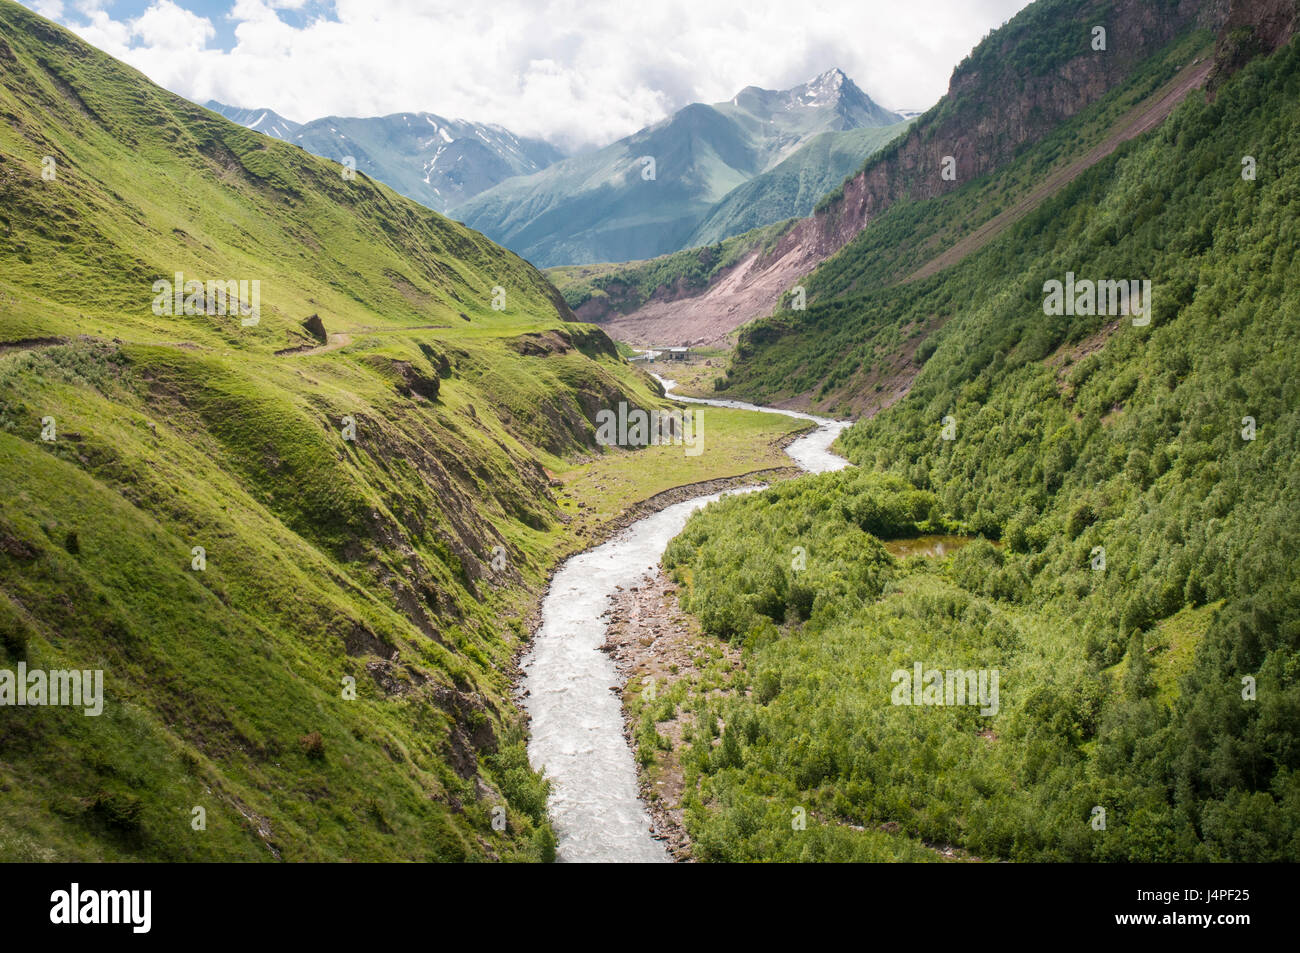 Truso Valley in the High Caucasus, Georgia, bordering the Russian-sponsored renegade territory of South Ossetia - Stock Image